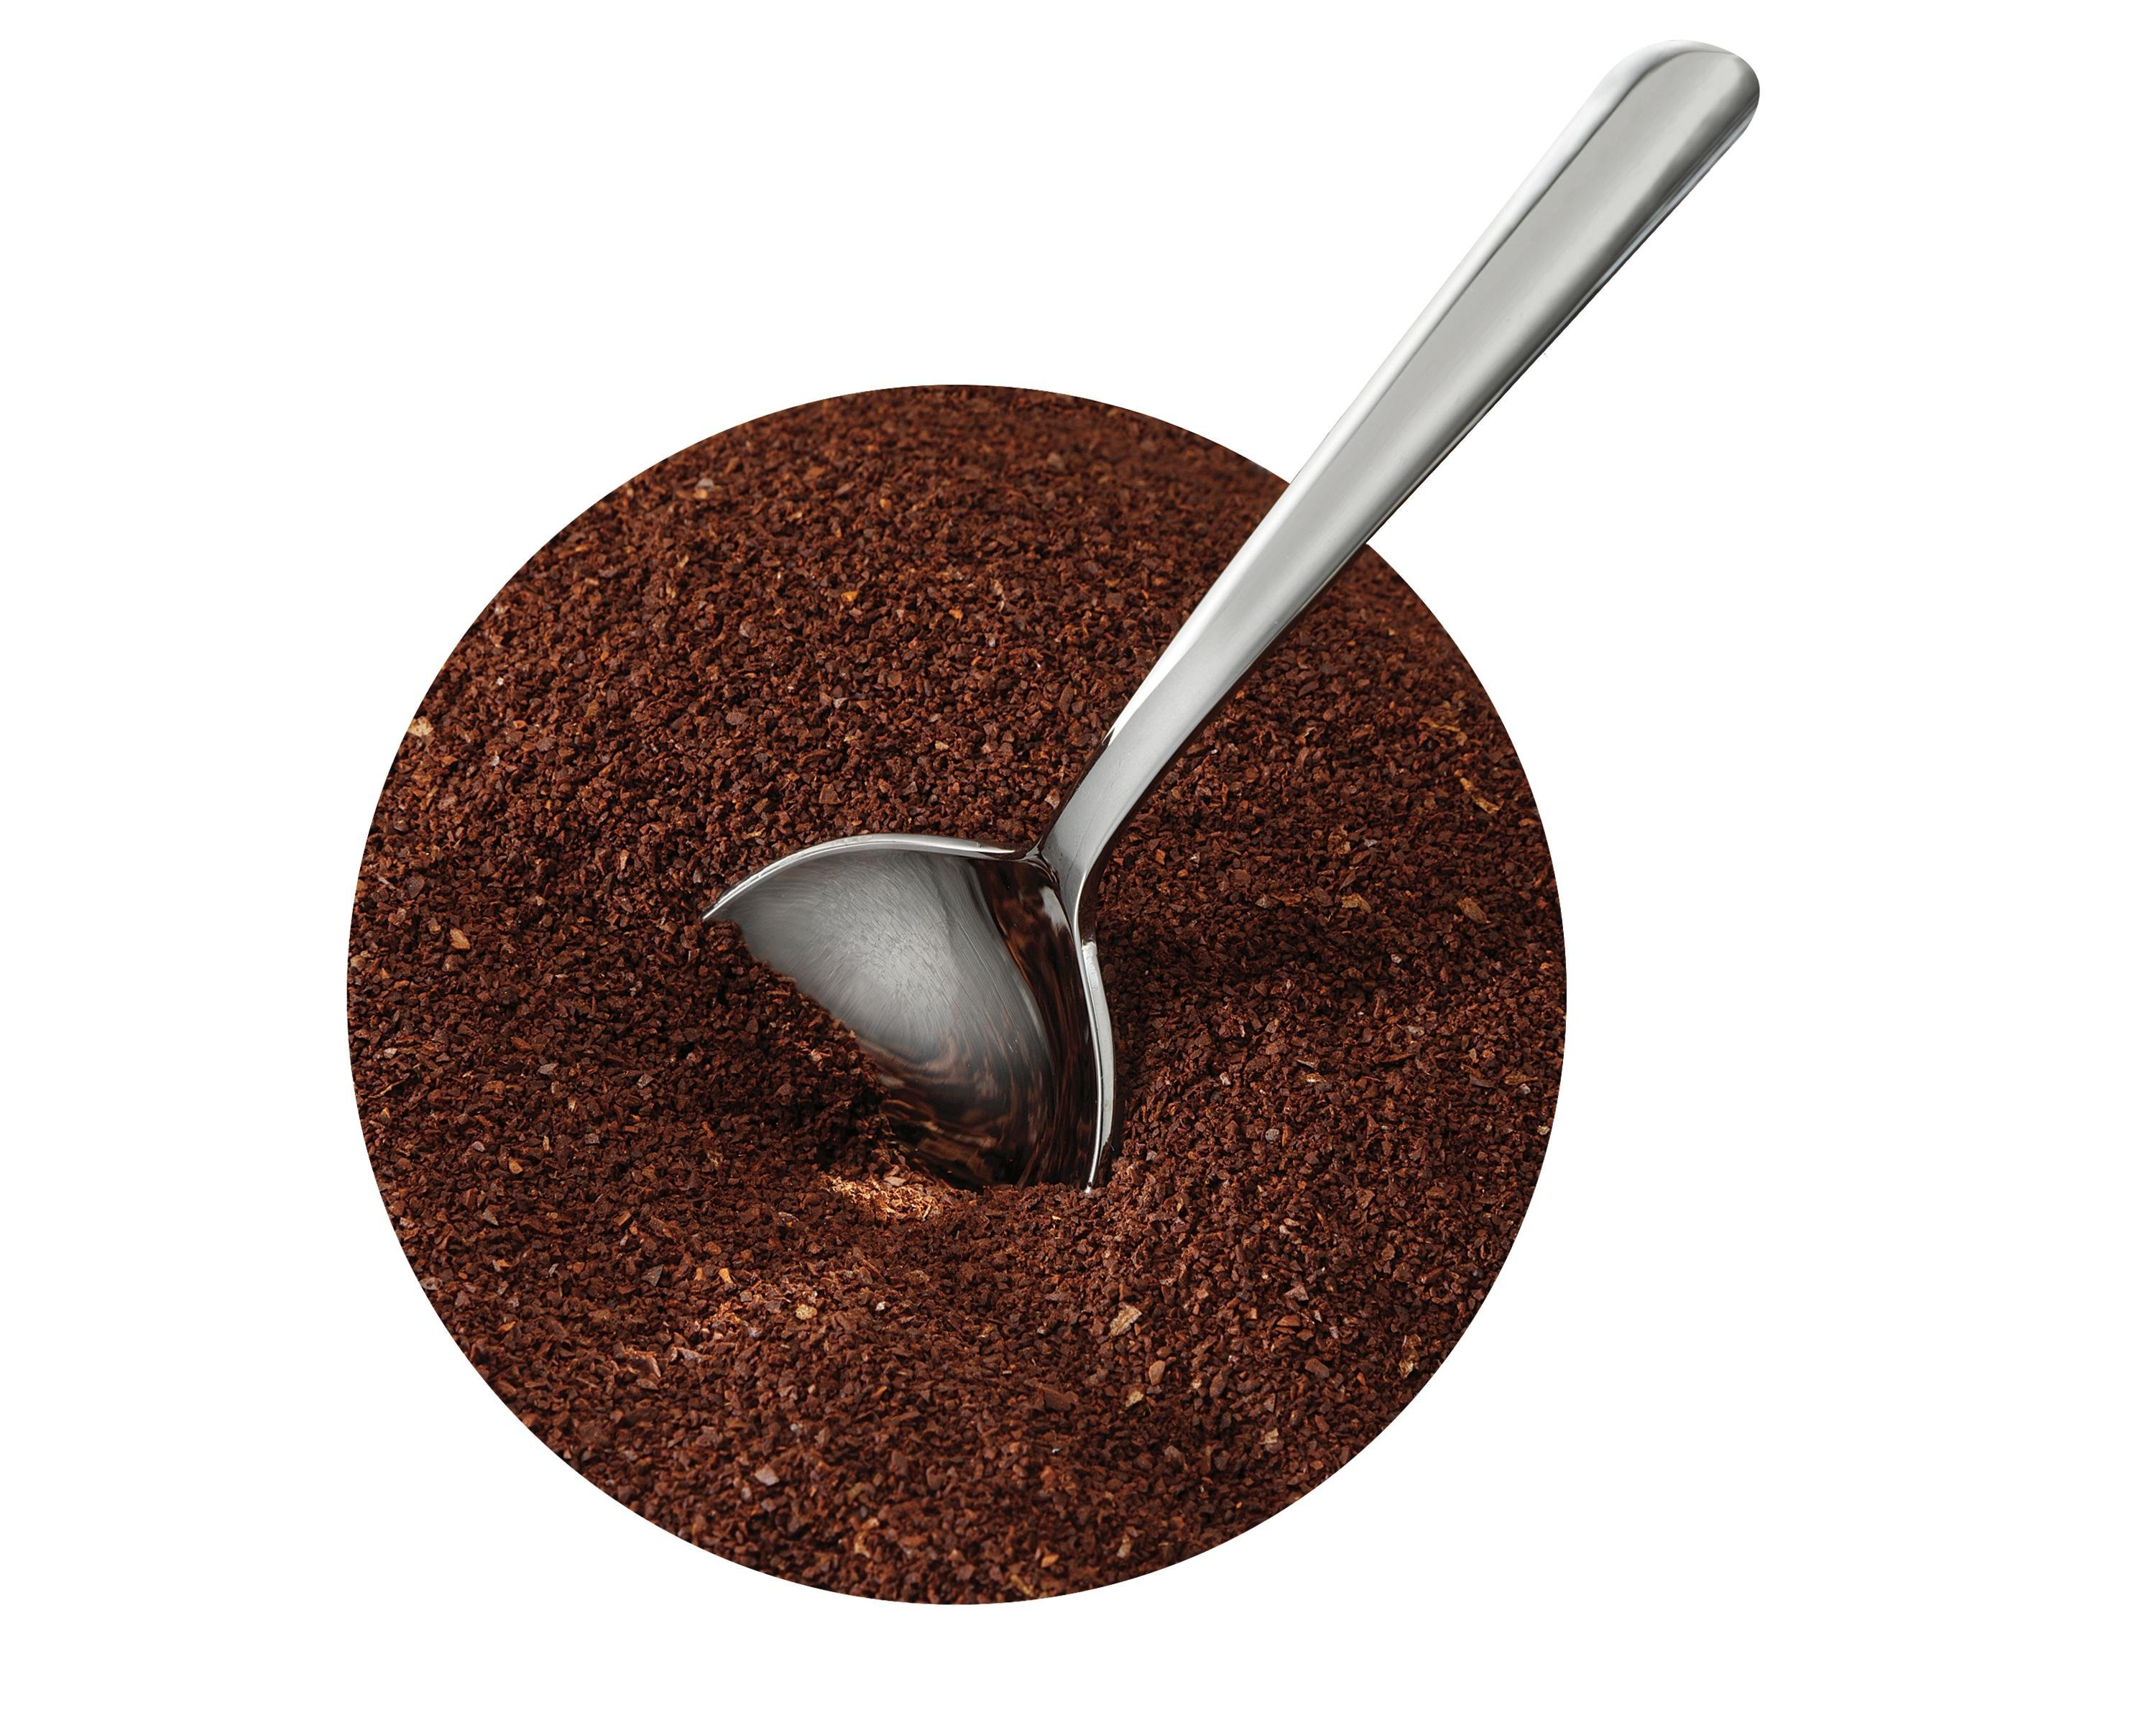 Can You Use Coffee Ground In The Keurig K Plus